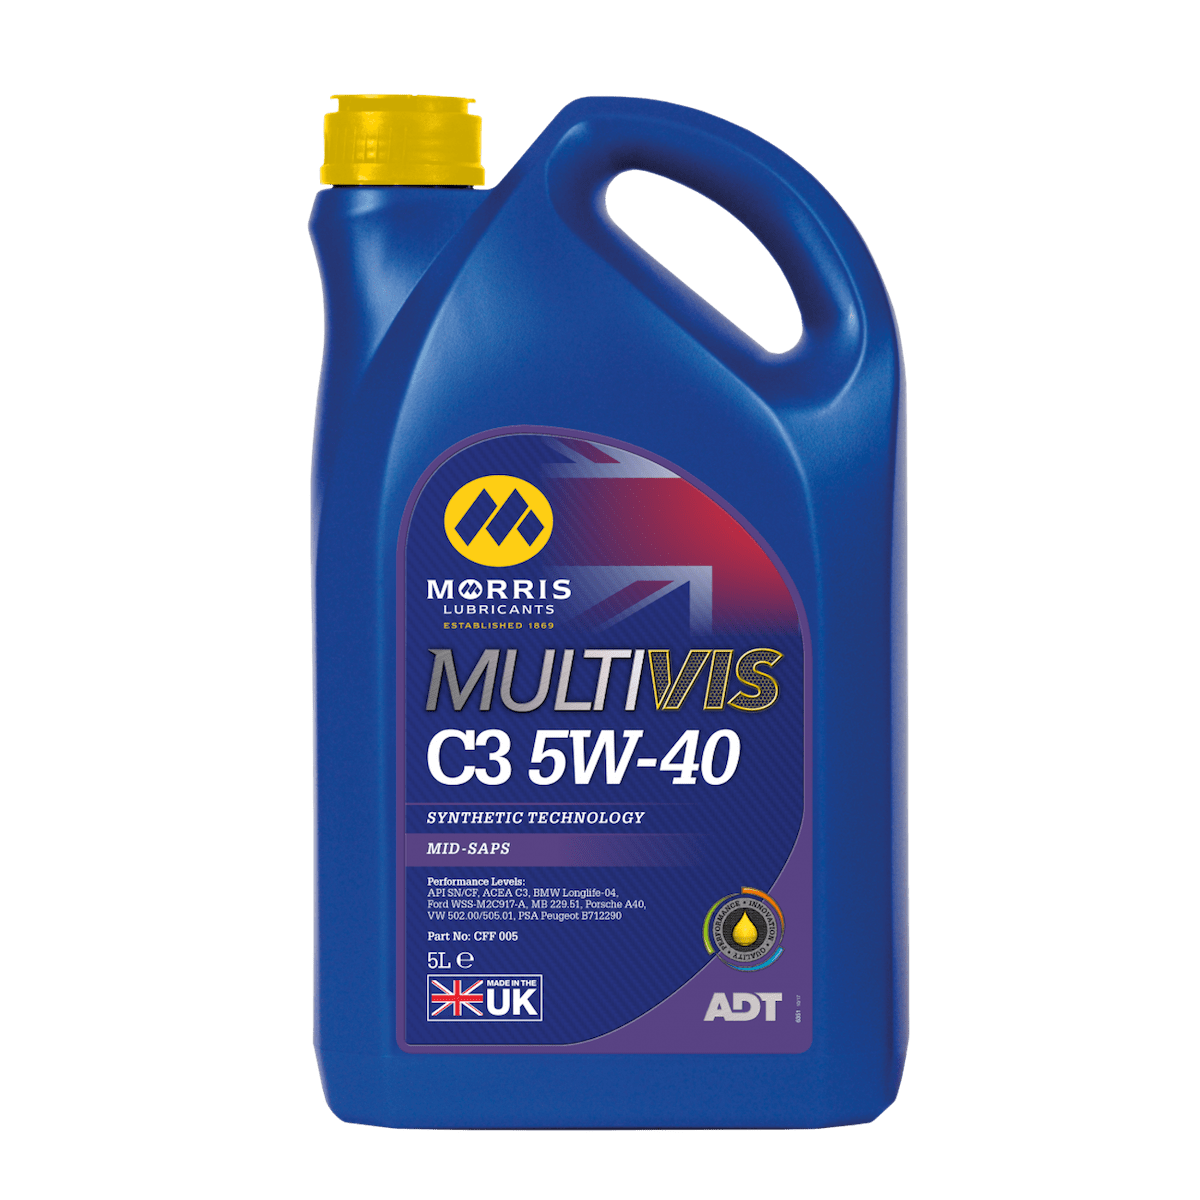 Multivis ADT C3 5W-40 (Previously Multilife C-THREE 5W-40)